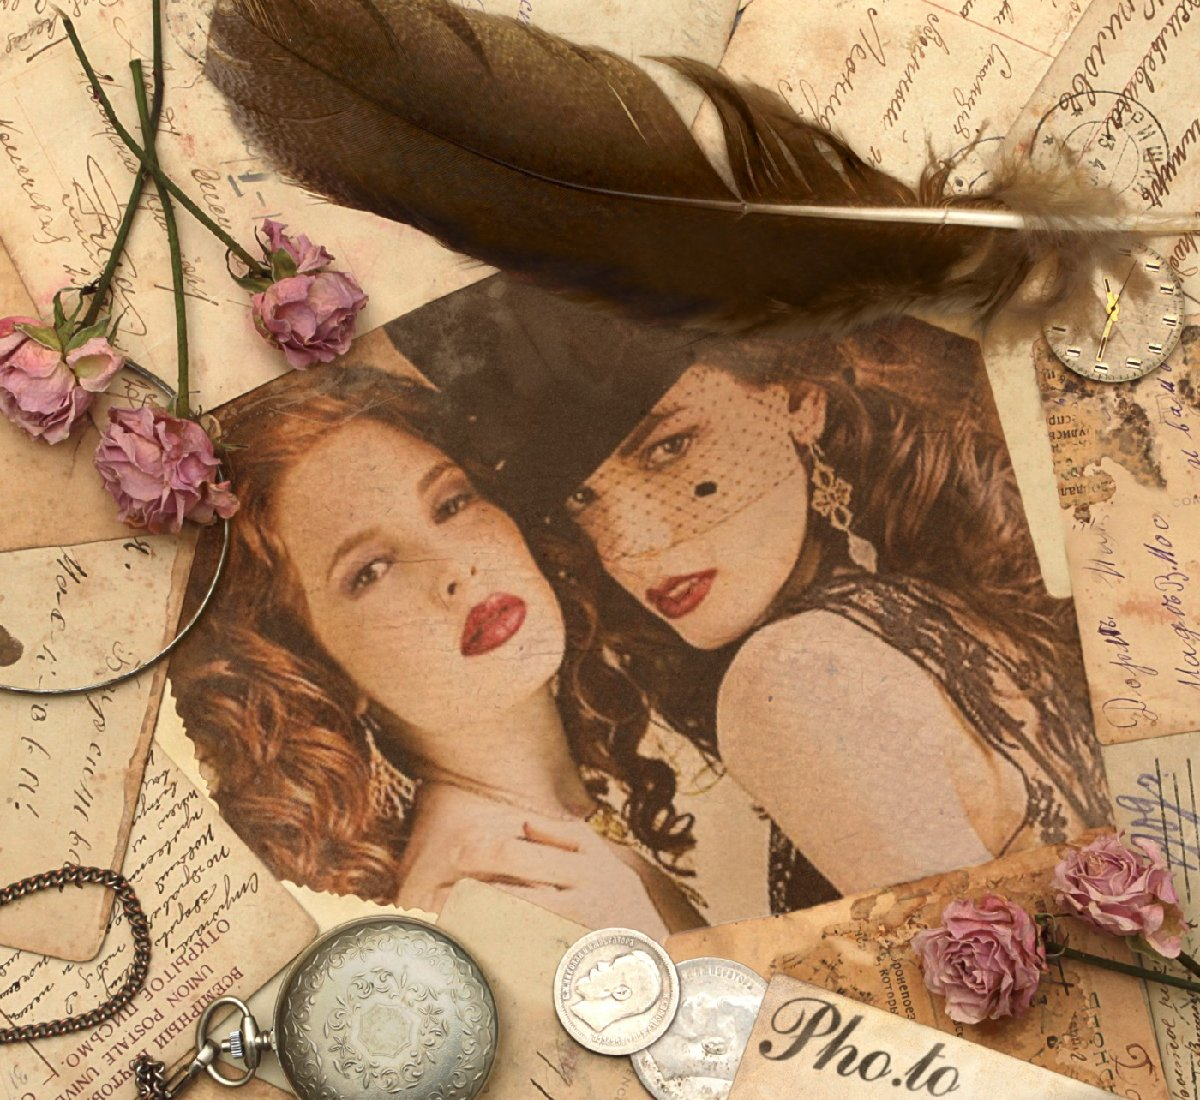 Retro photo of two girls with a vintage style photo frame